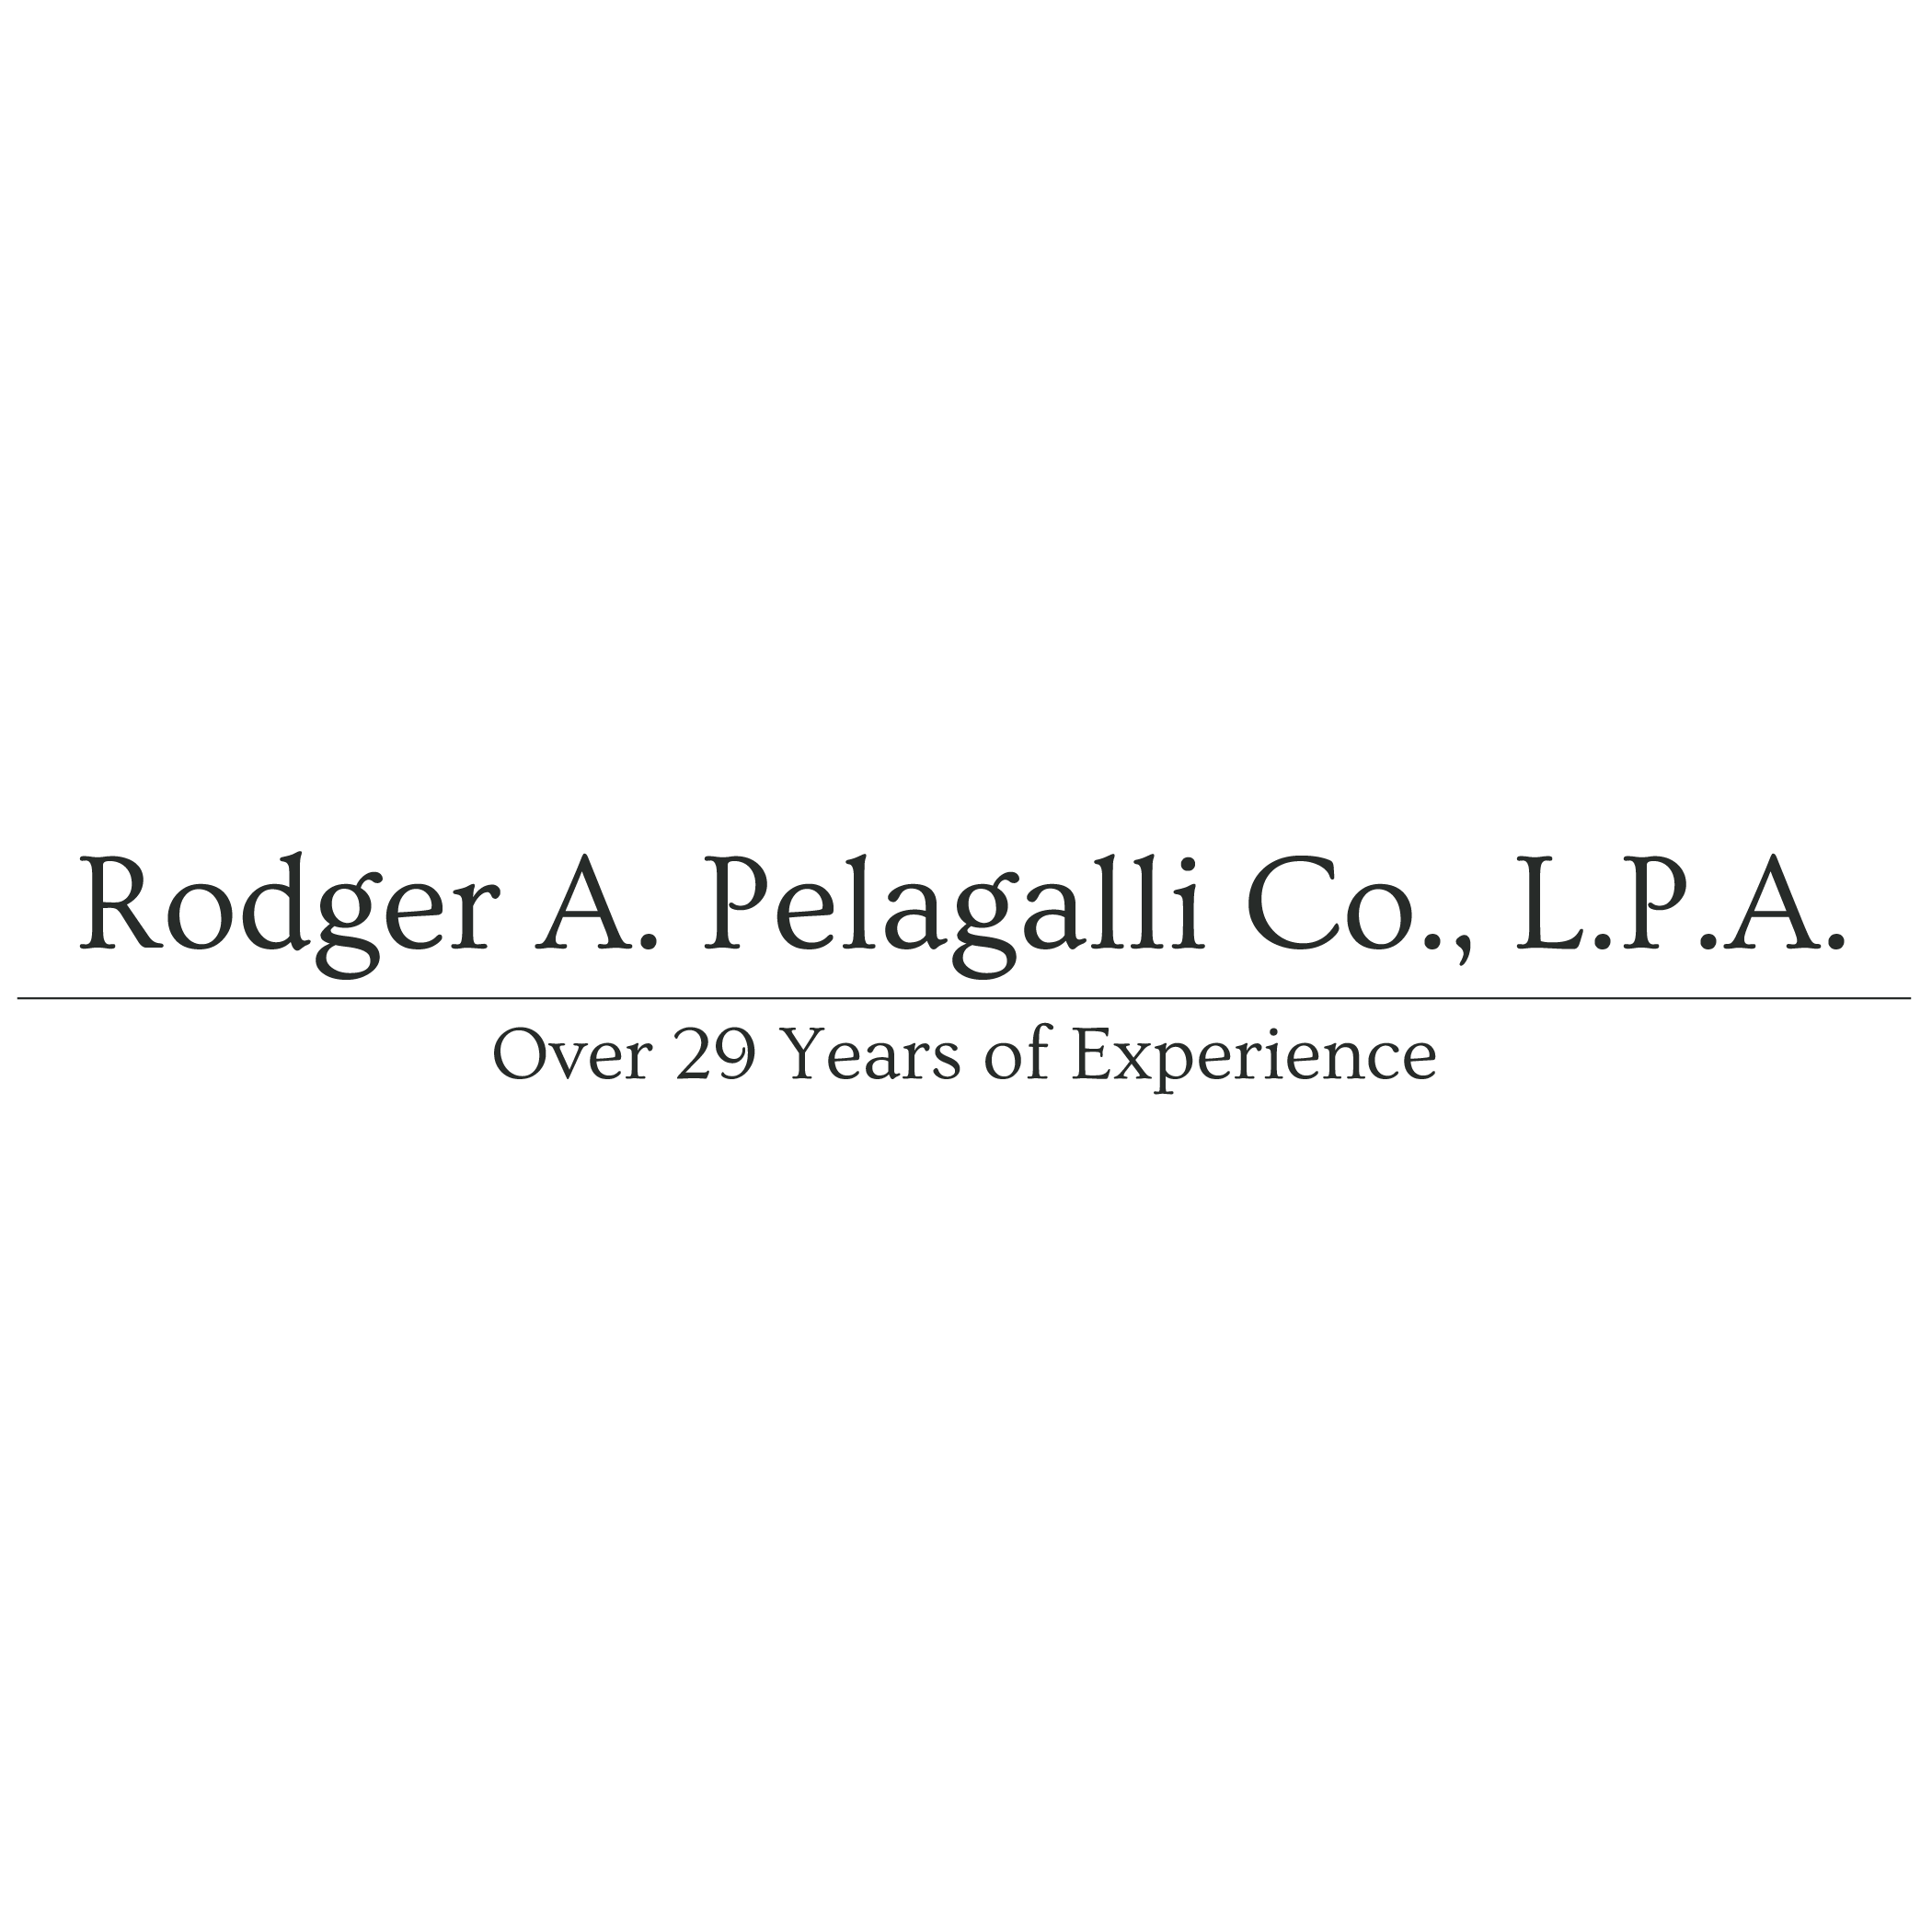 Rodger A. Pelgalli Co., L.P.A - Parma Heights, OH - Attorneys